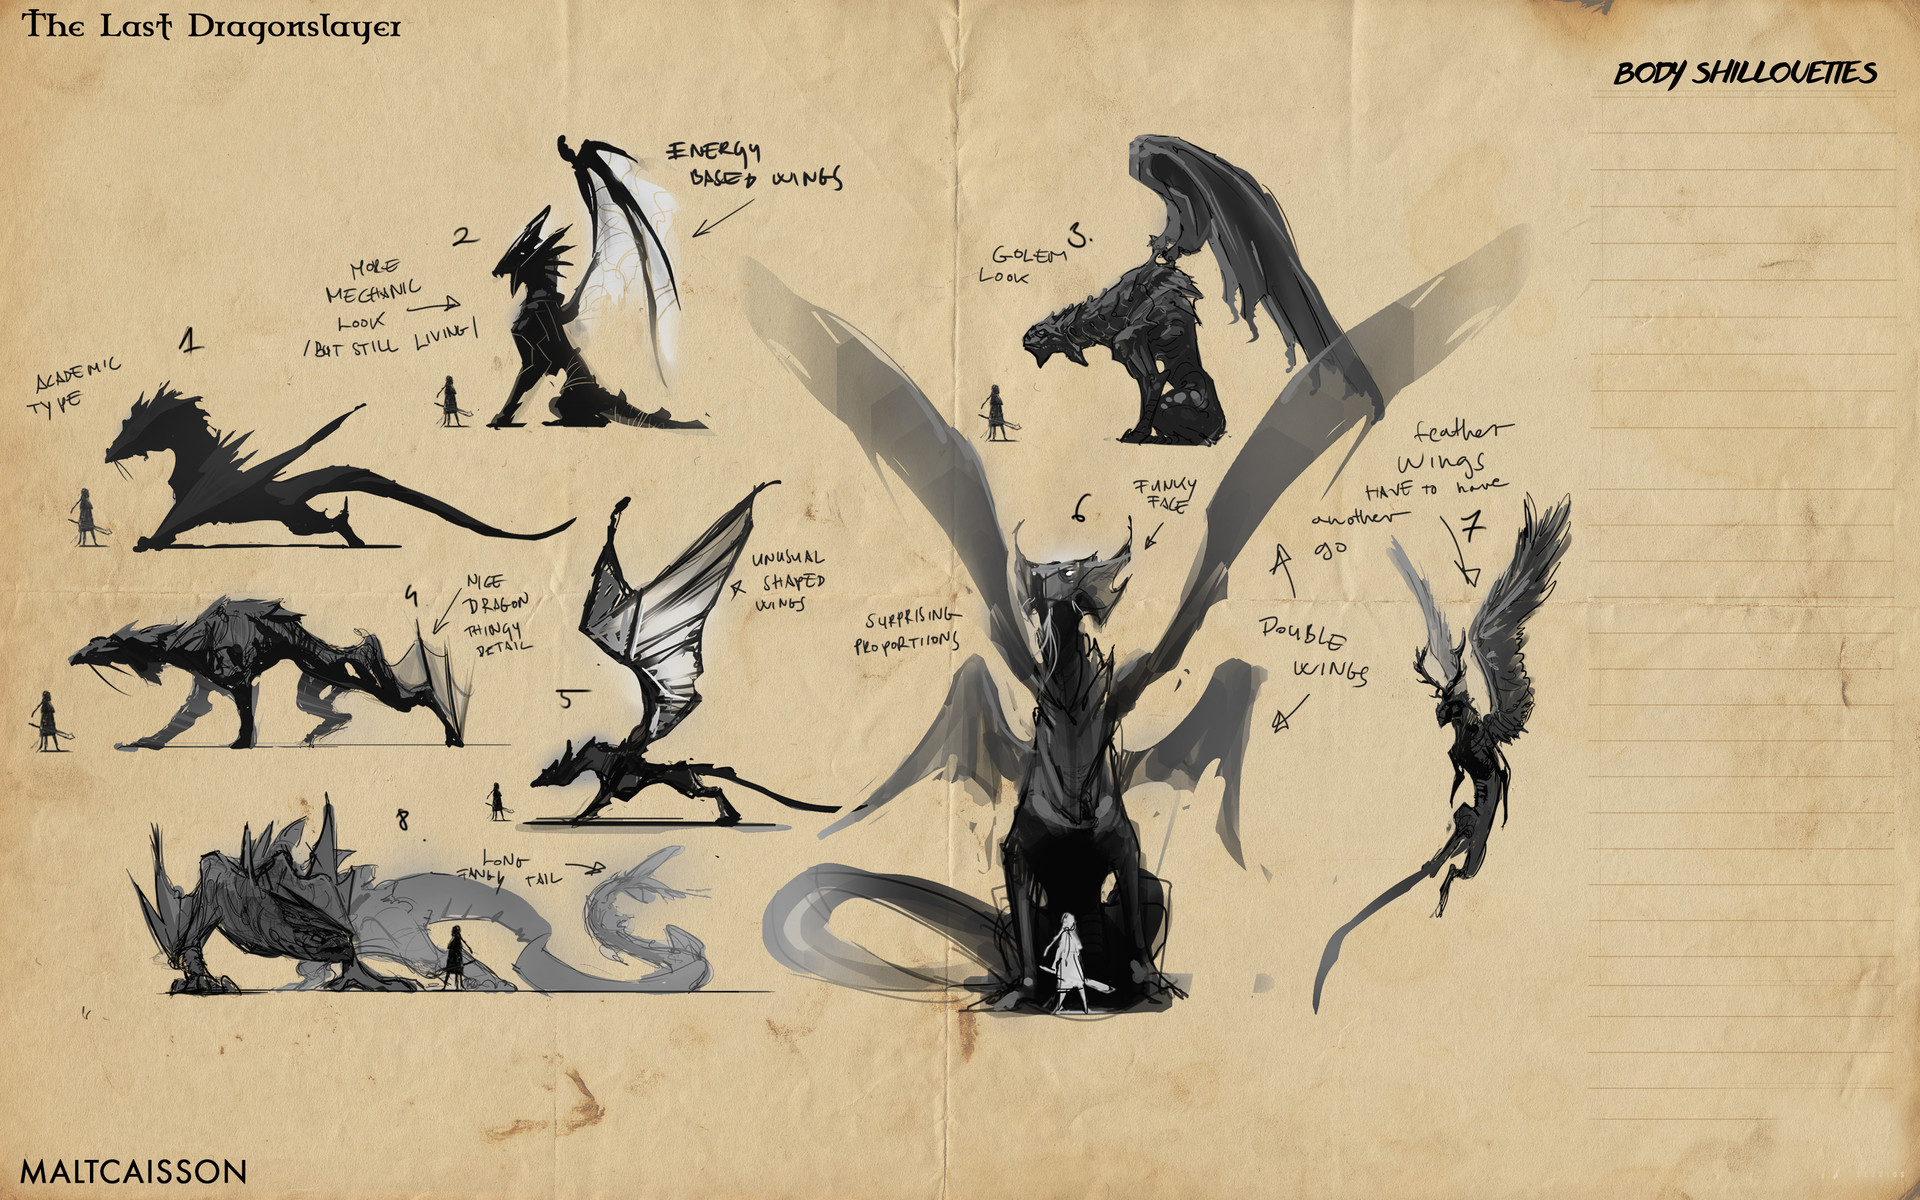 Nothof Ferenc Portfolio - Dragon design for Tv show: The